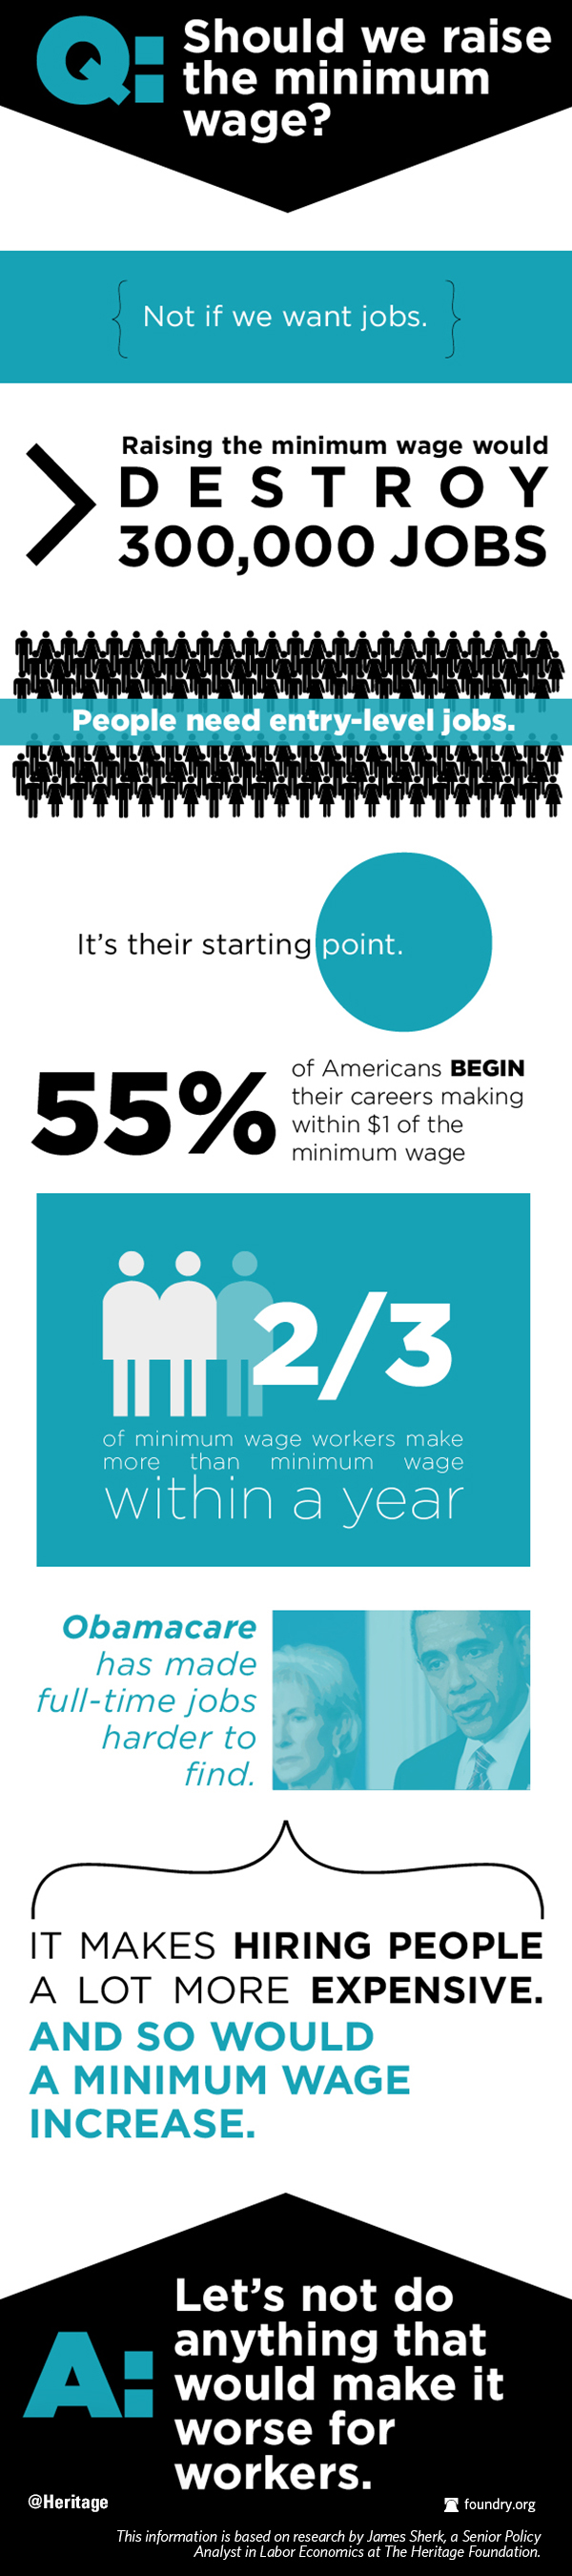 Should We Raise the Minimum Wage? - Infographic